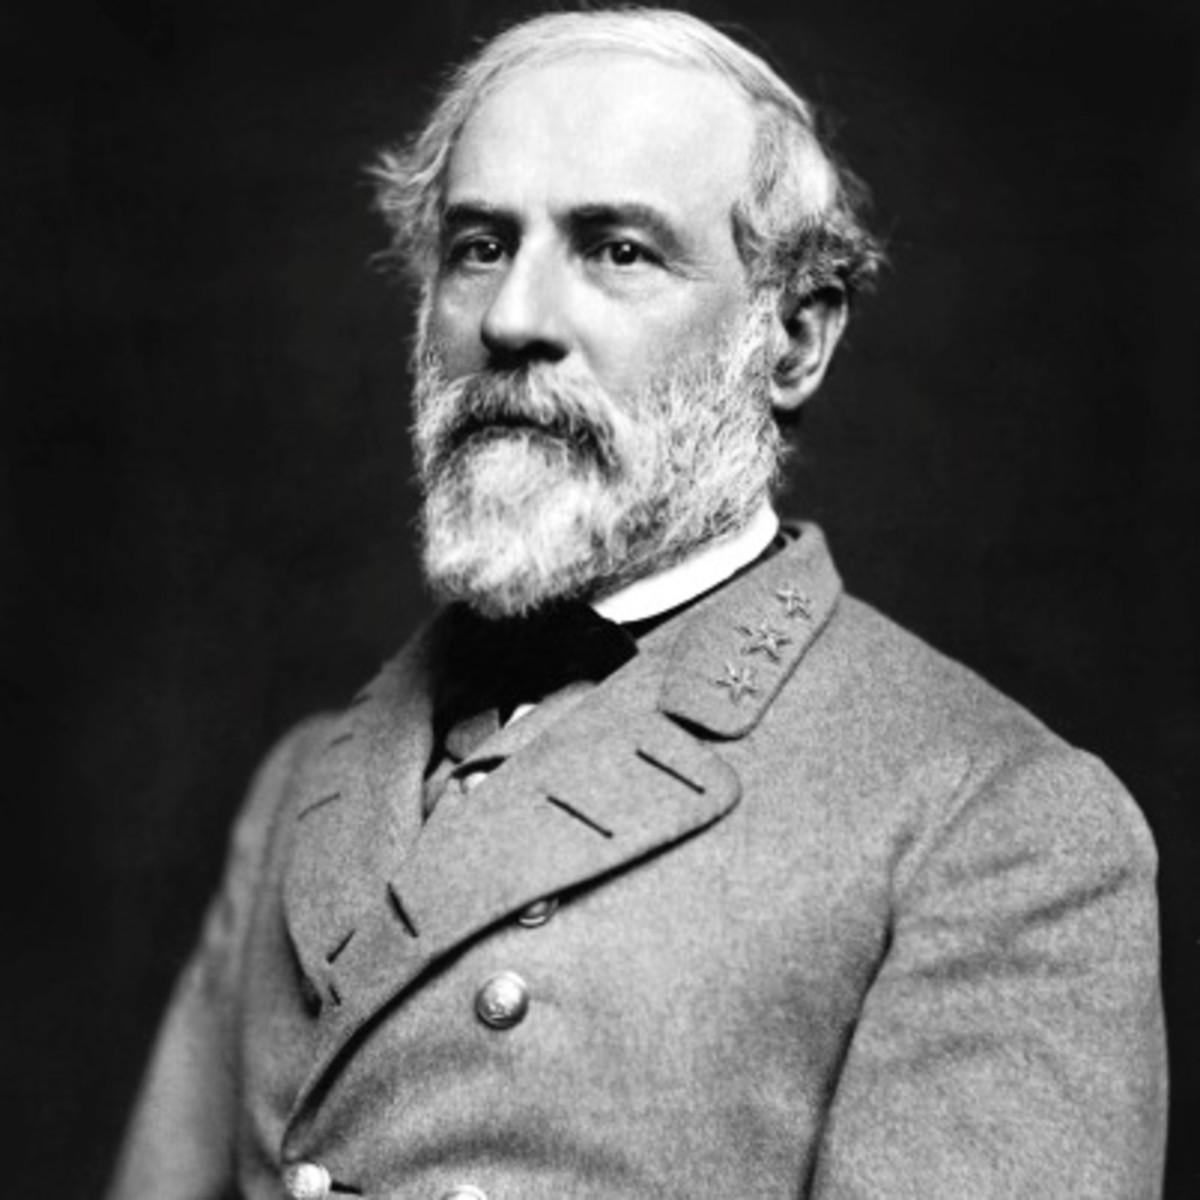 Robert E. Lee - Quotes, Children & Statue - Biography